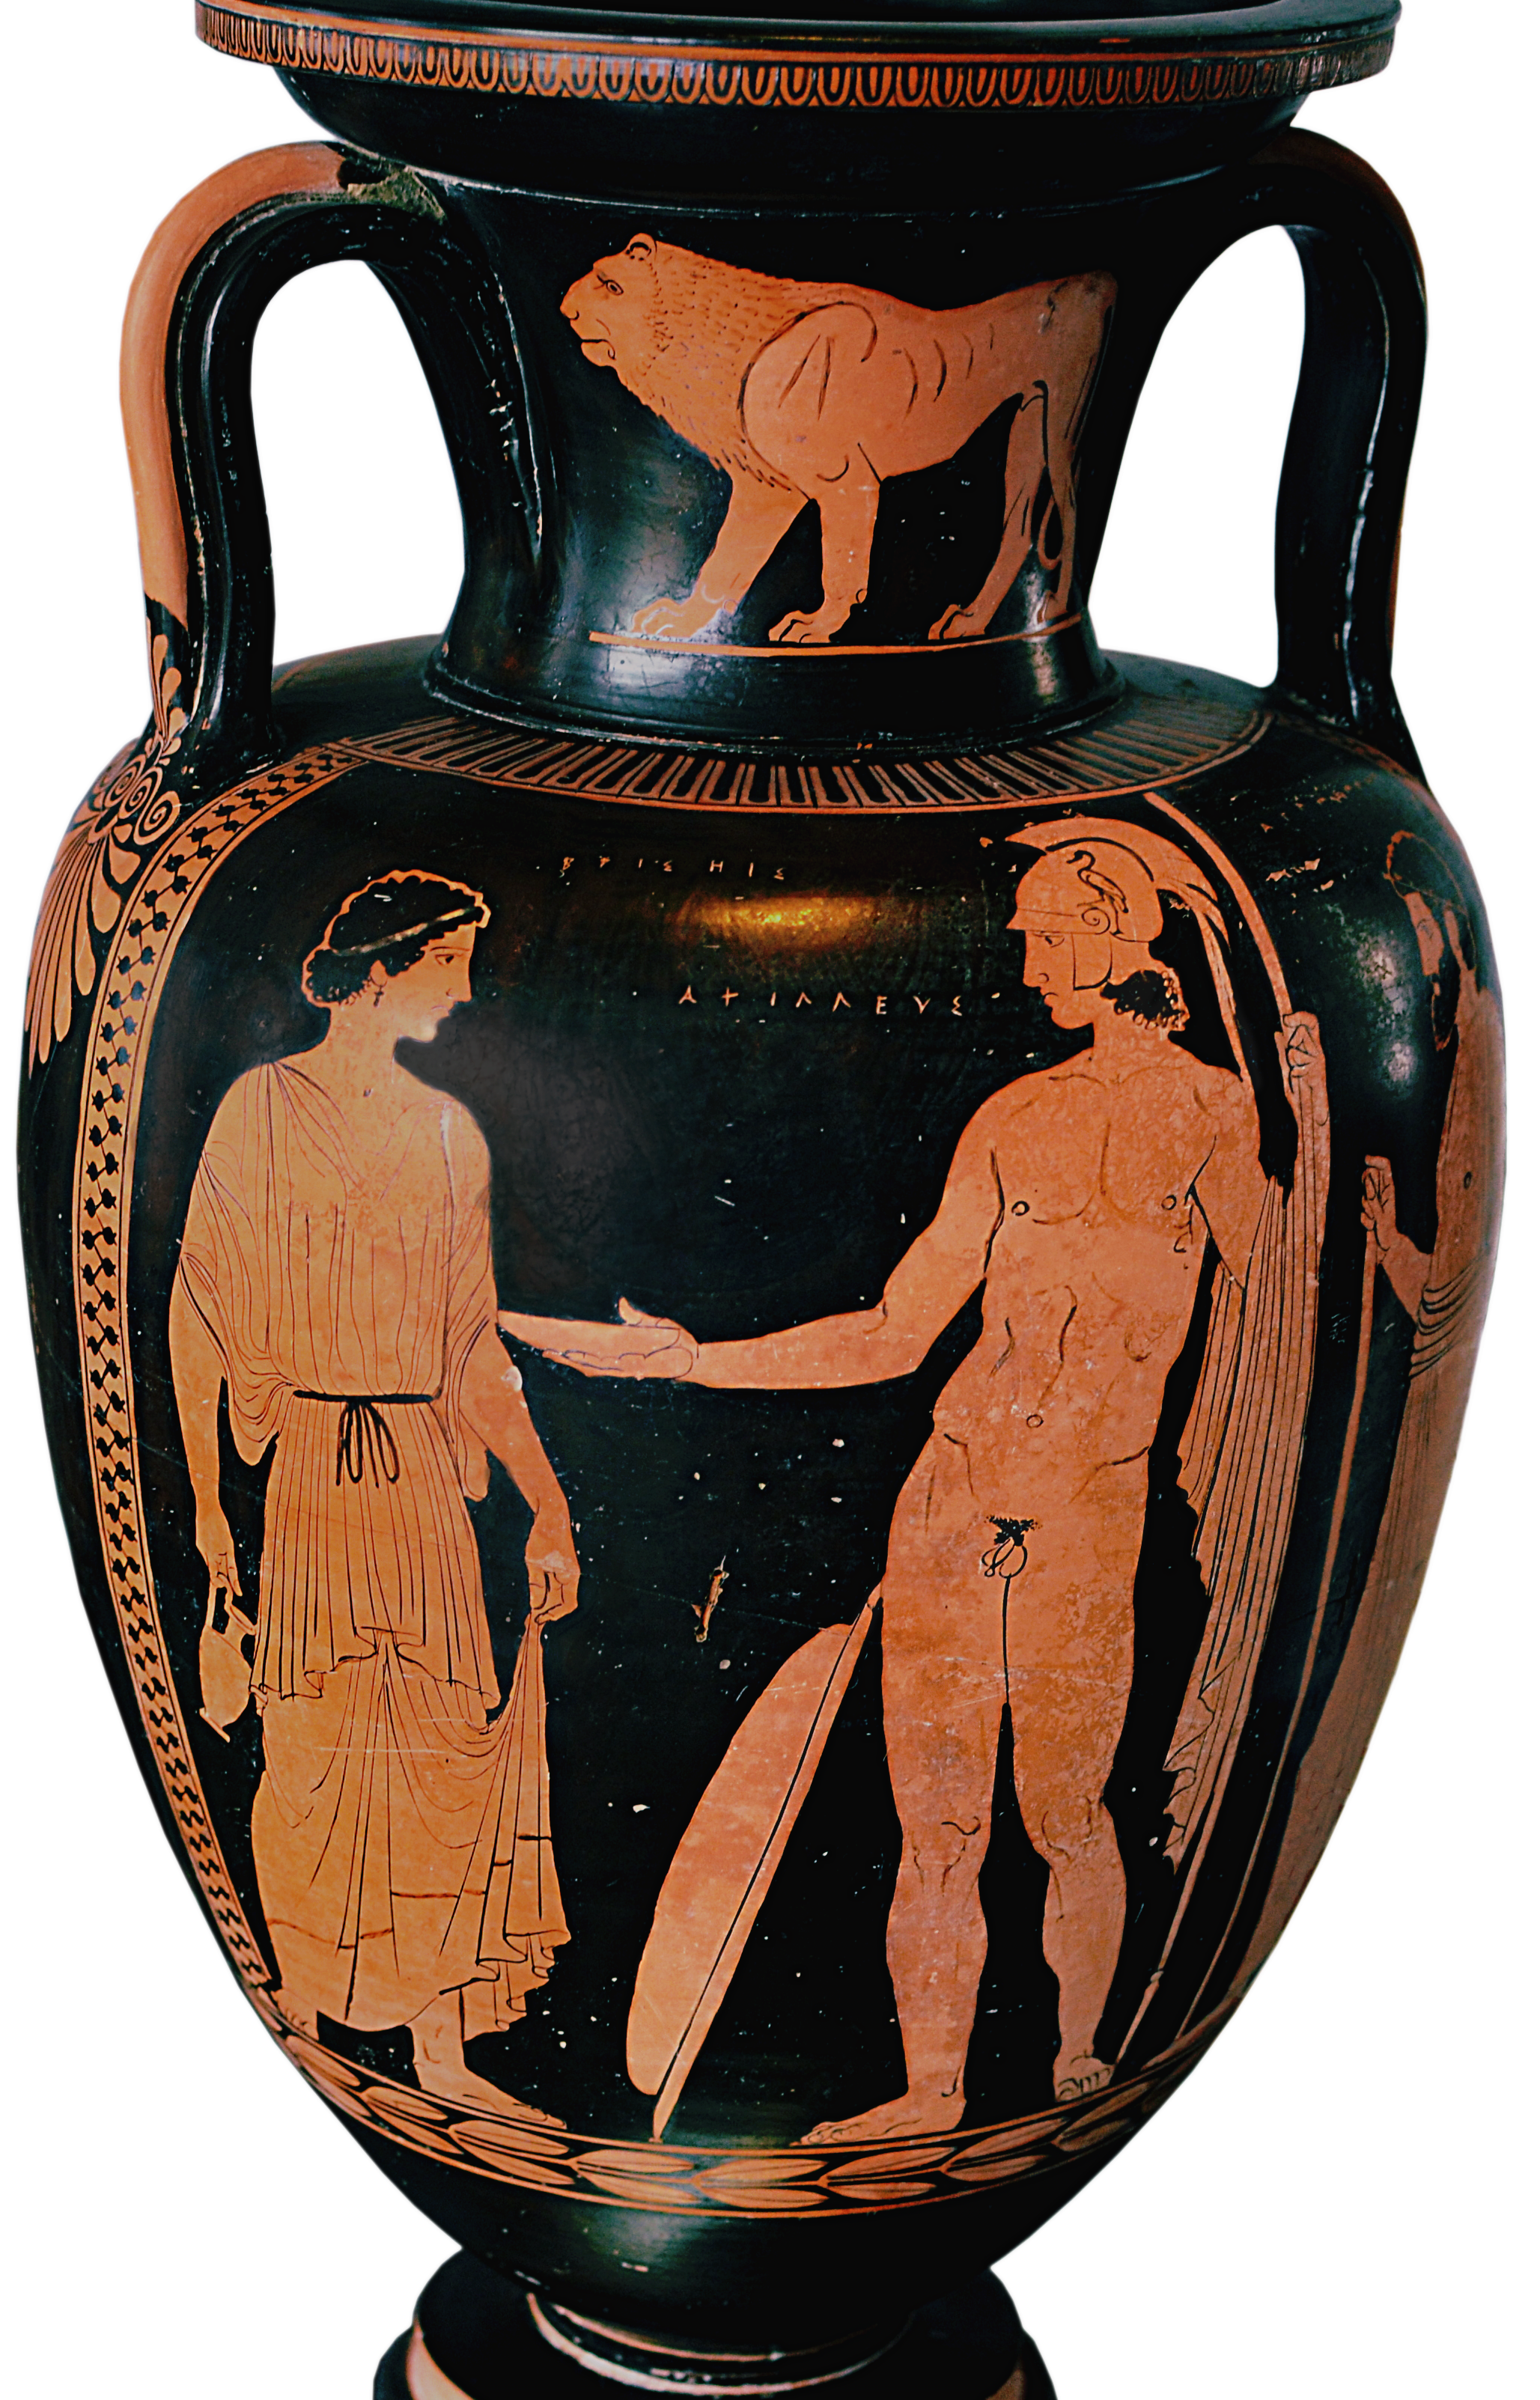 A glossary of ancient greek characters the shield of achilles apulian red figure amphora ca 430 410 bce depicting achilles and briseis reviewsmspy